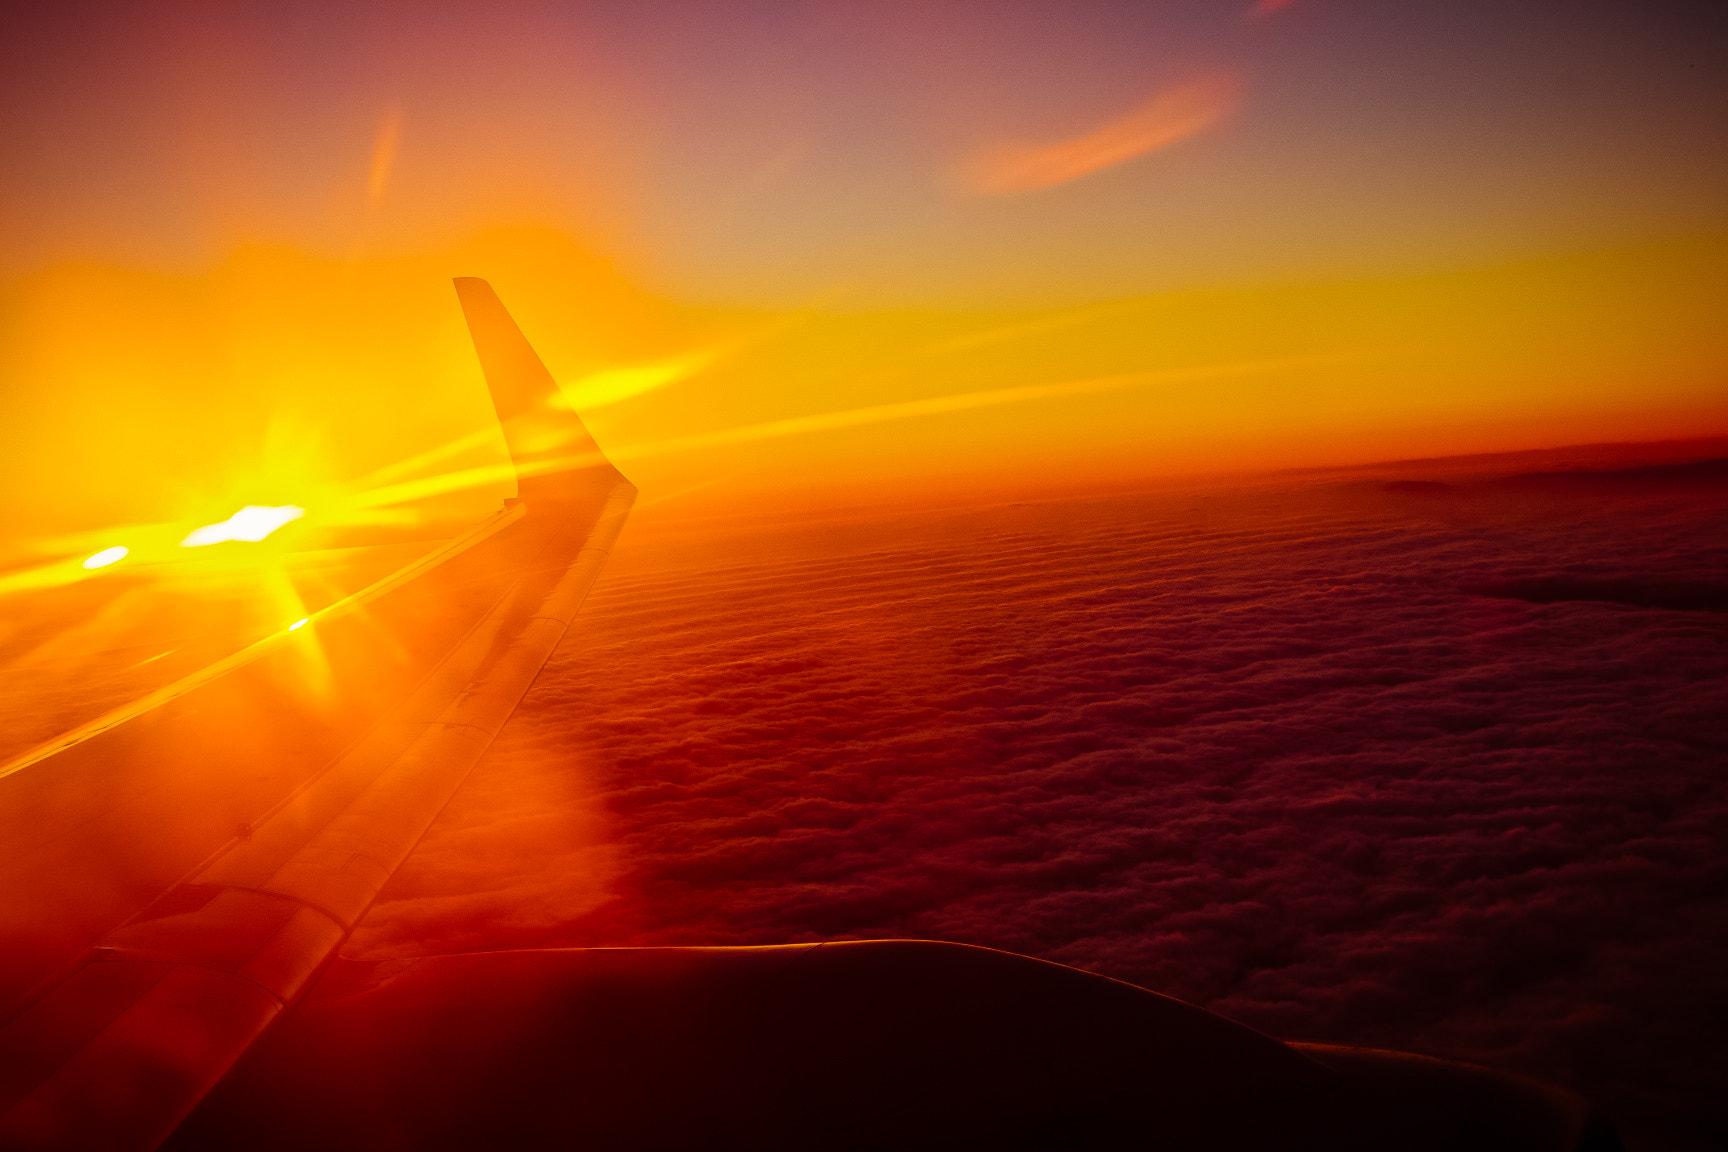 Photograph Flying With The Sunset by Jherell Rabanal on 500px